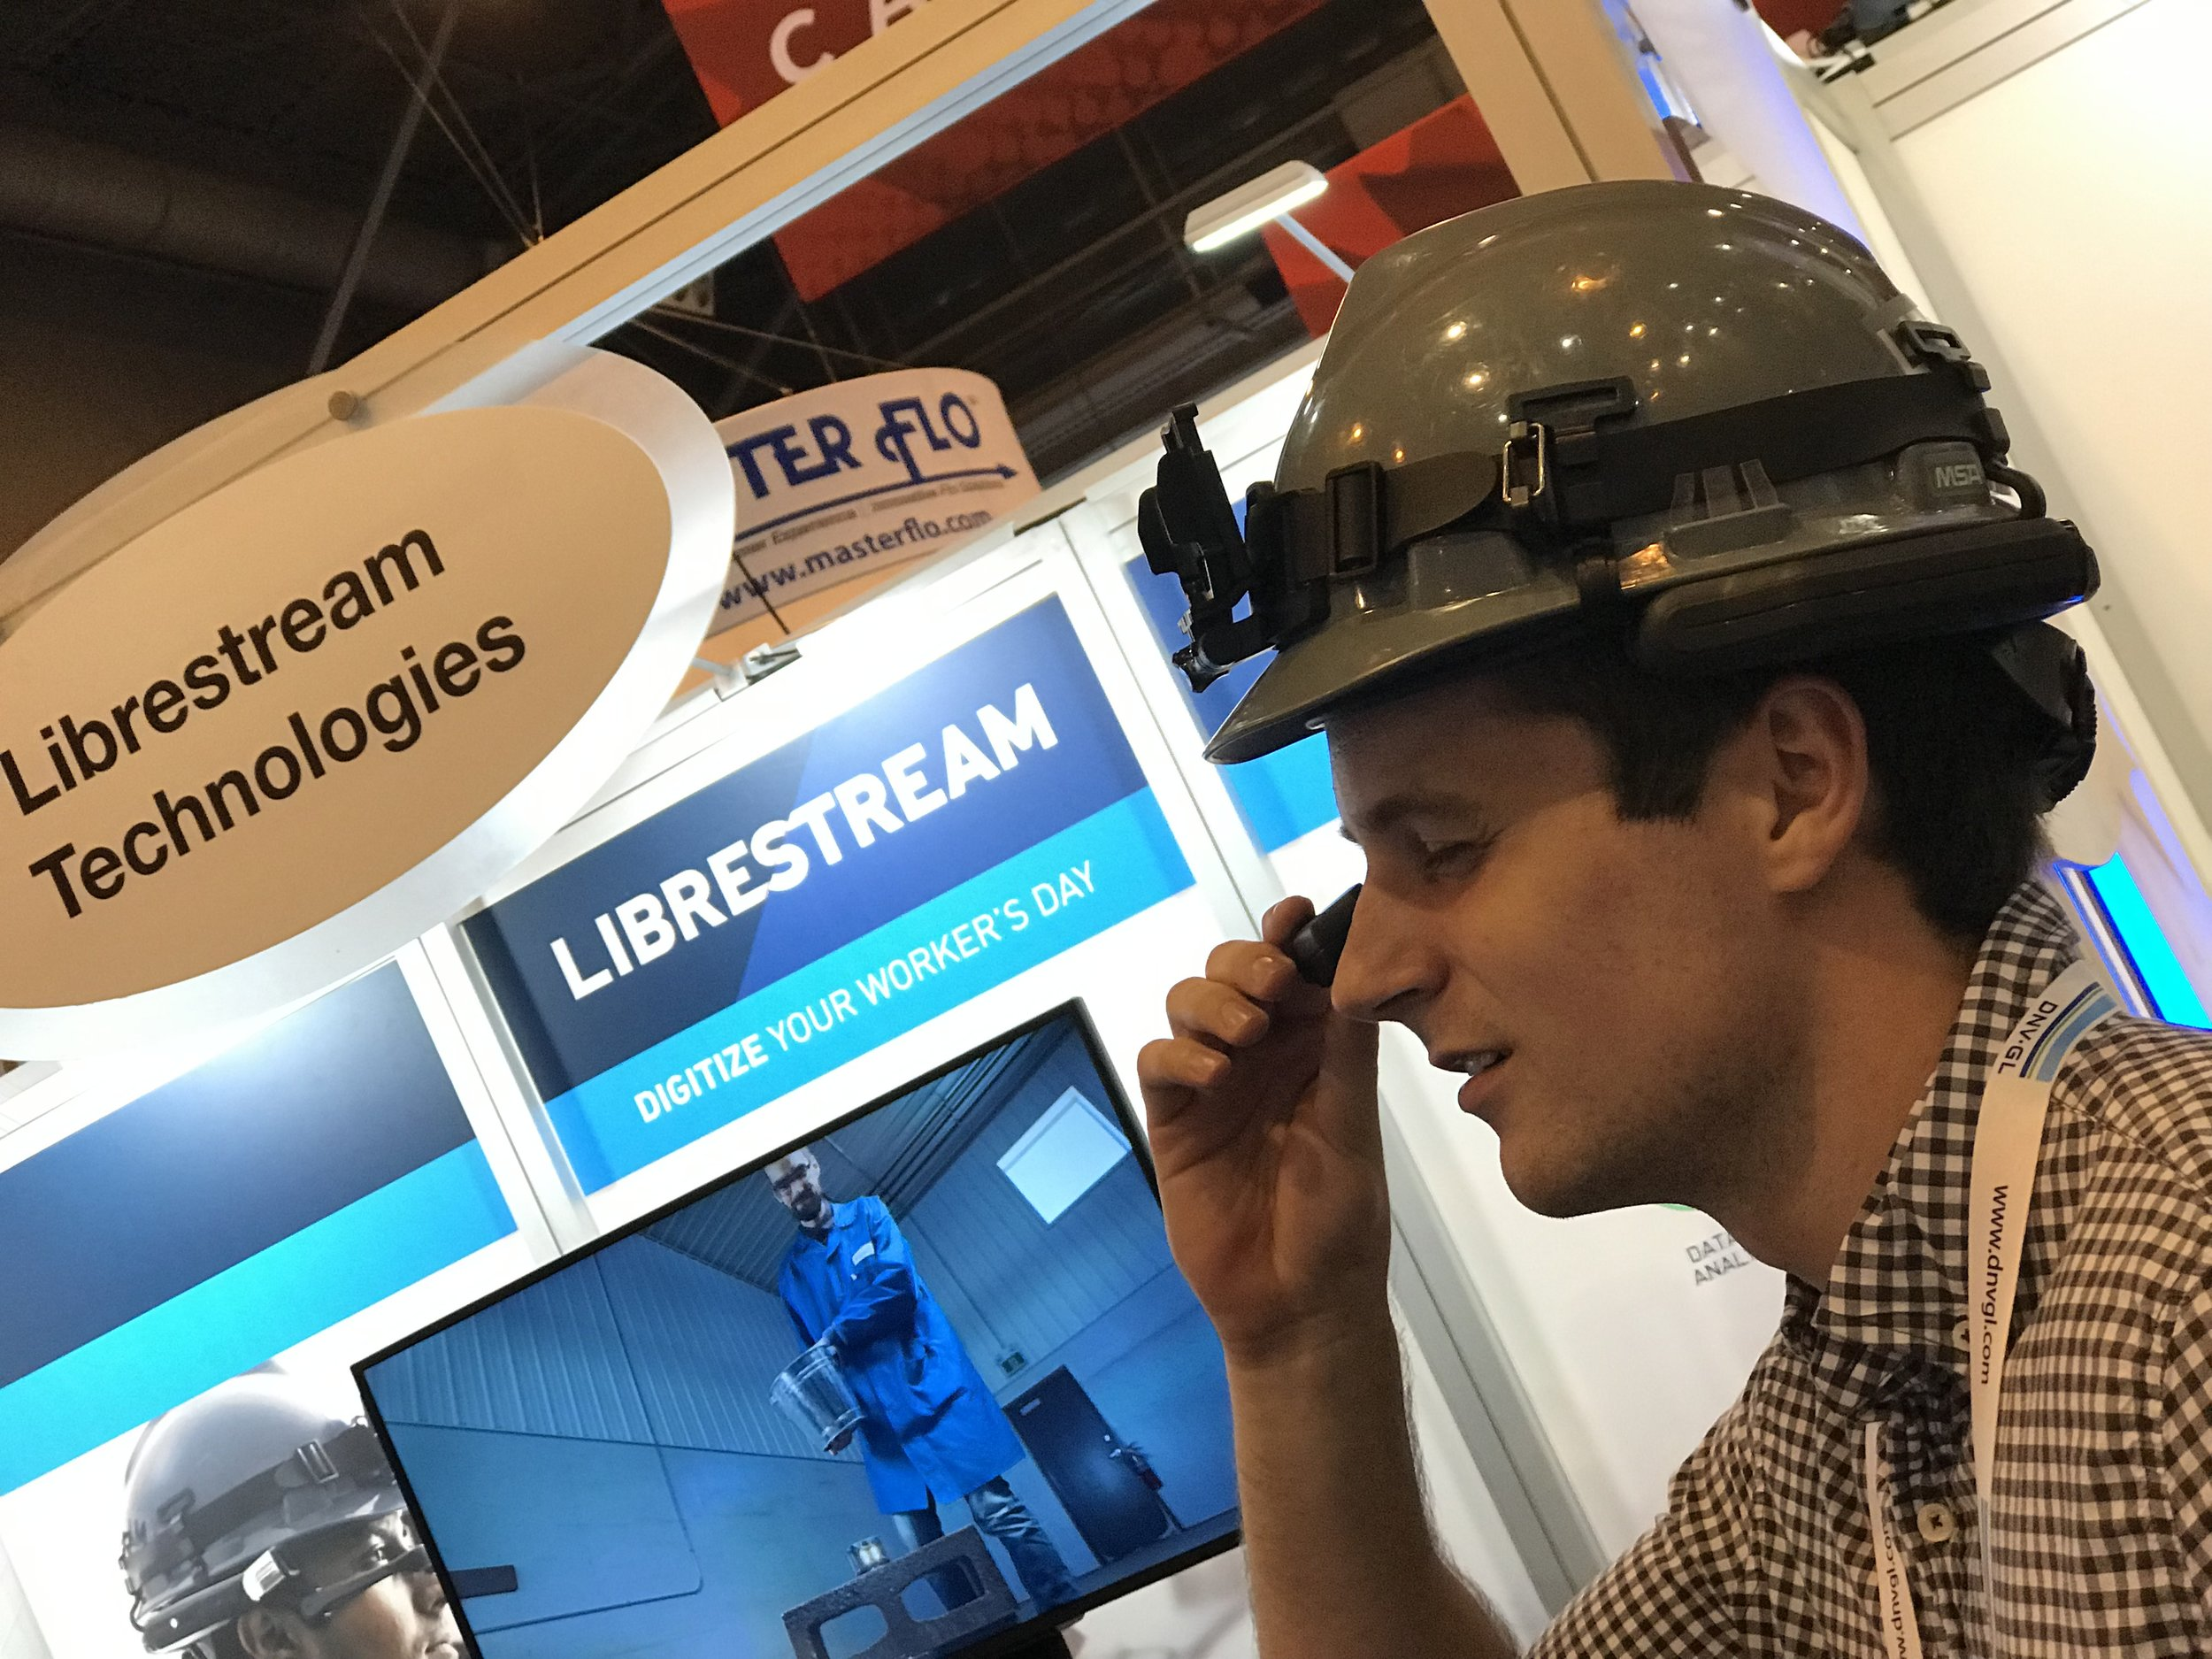 IPOZ_LAB-Librestream-Onsight Connect- Remote Operation - augmented workspace - OTC.JPG